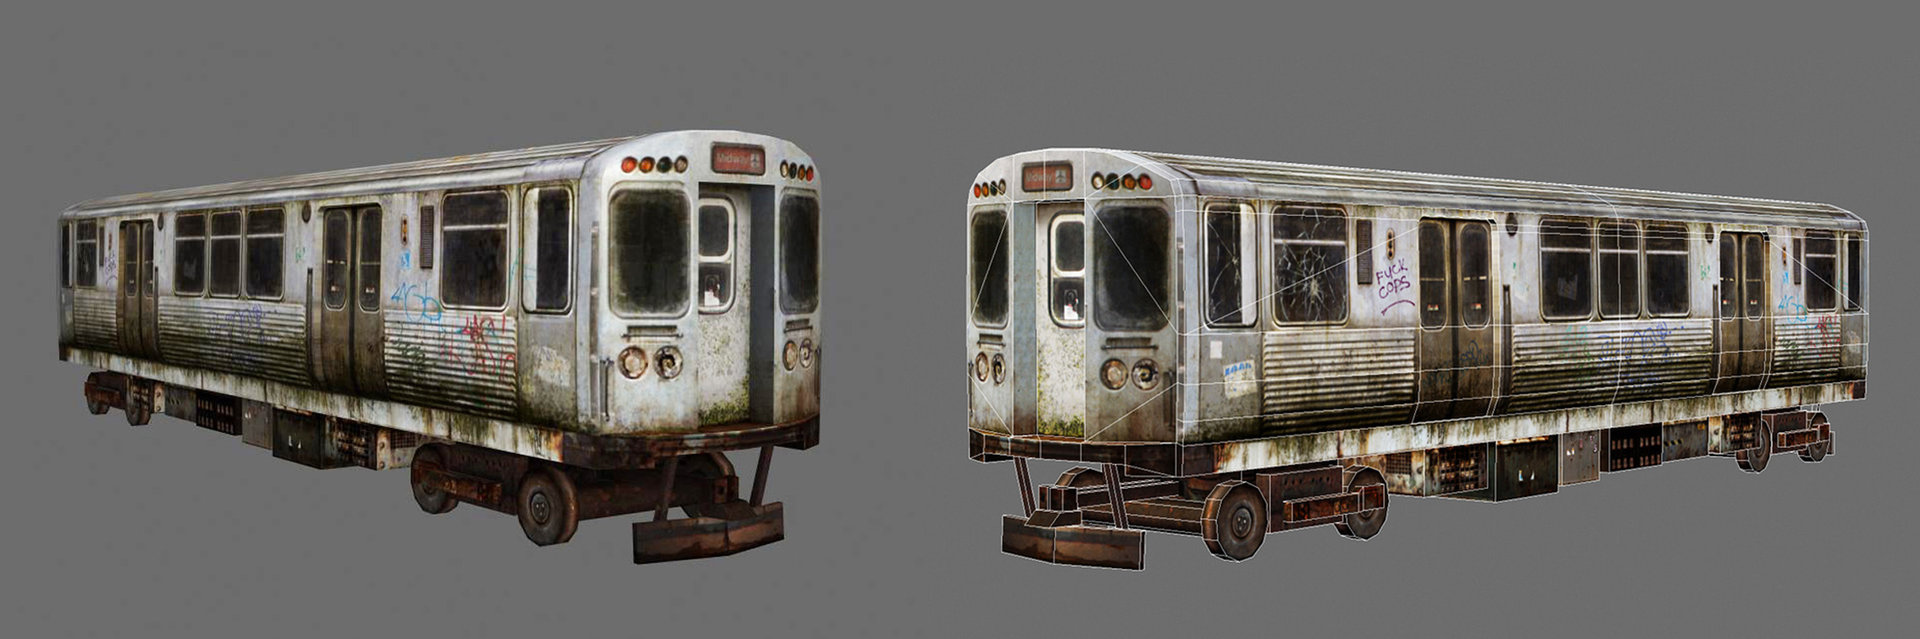 Old and dirty train by audreee d5sfpj5